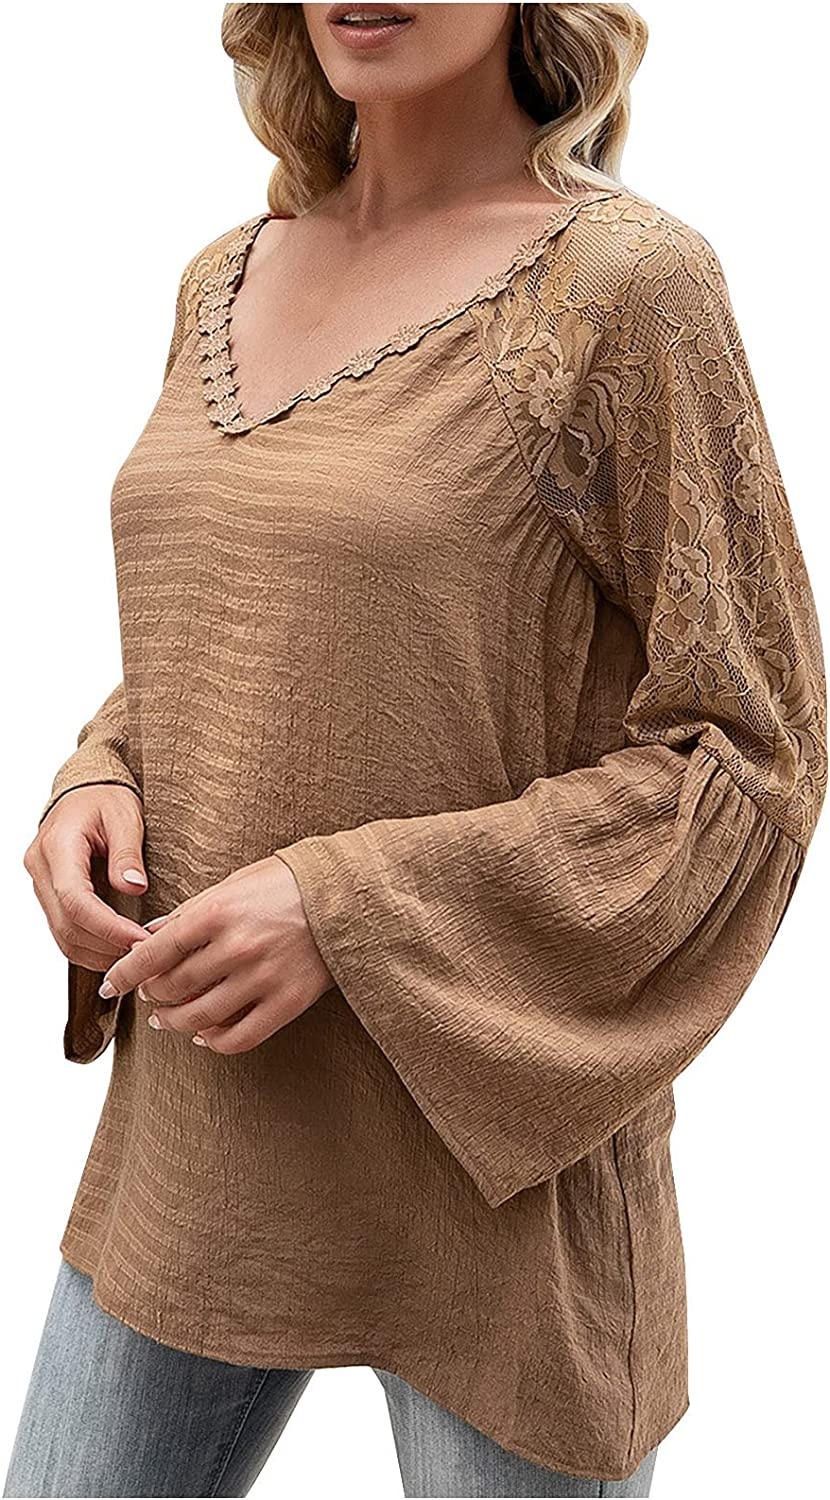 Summer Tops for Women Casual V Neck Solid Blouse Flared Long Sleeve T Shirt Lace Patchwork Hollow Out Pullover Tees